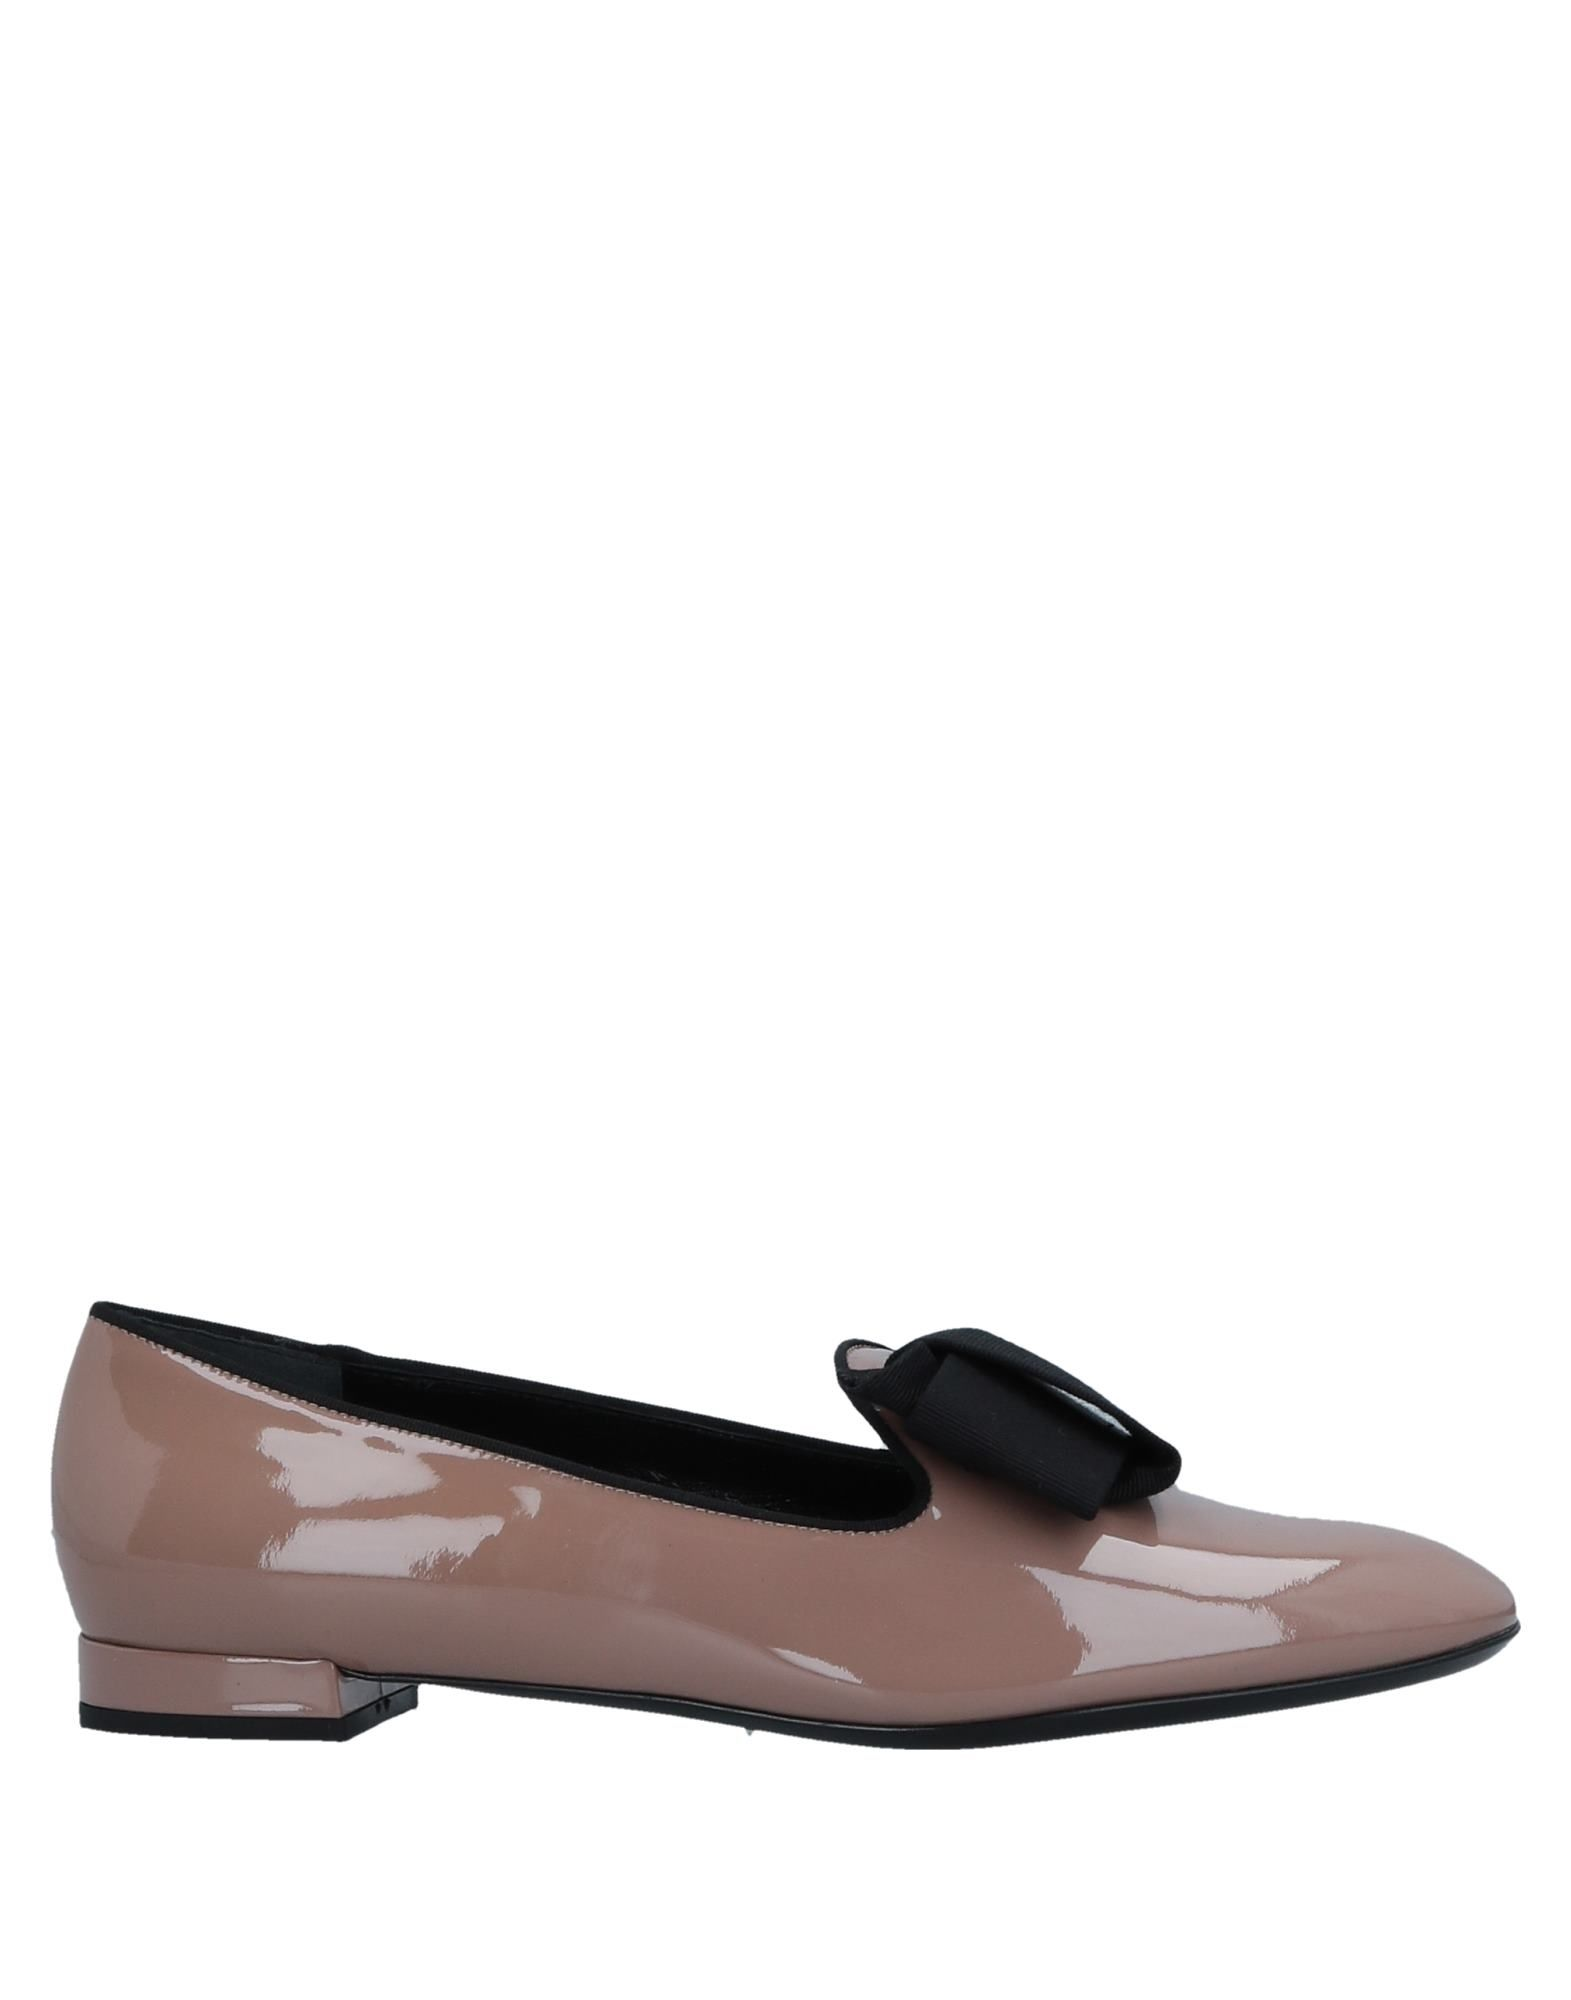 b2e2b7a5544 Giorgio Armani Loafers - Women Giorgio Armani Loafers Loafers Loafers online  on United Kingdom - 11523379BL 51f1df